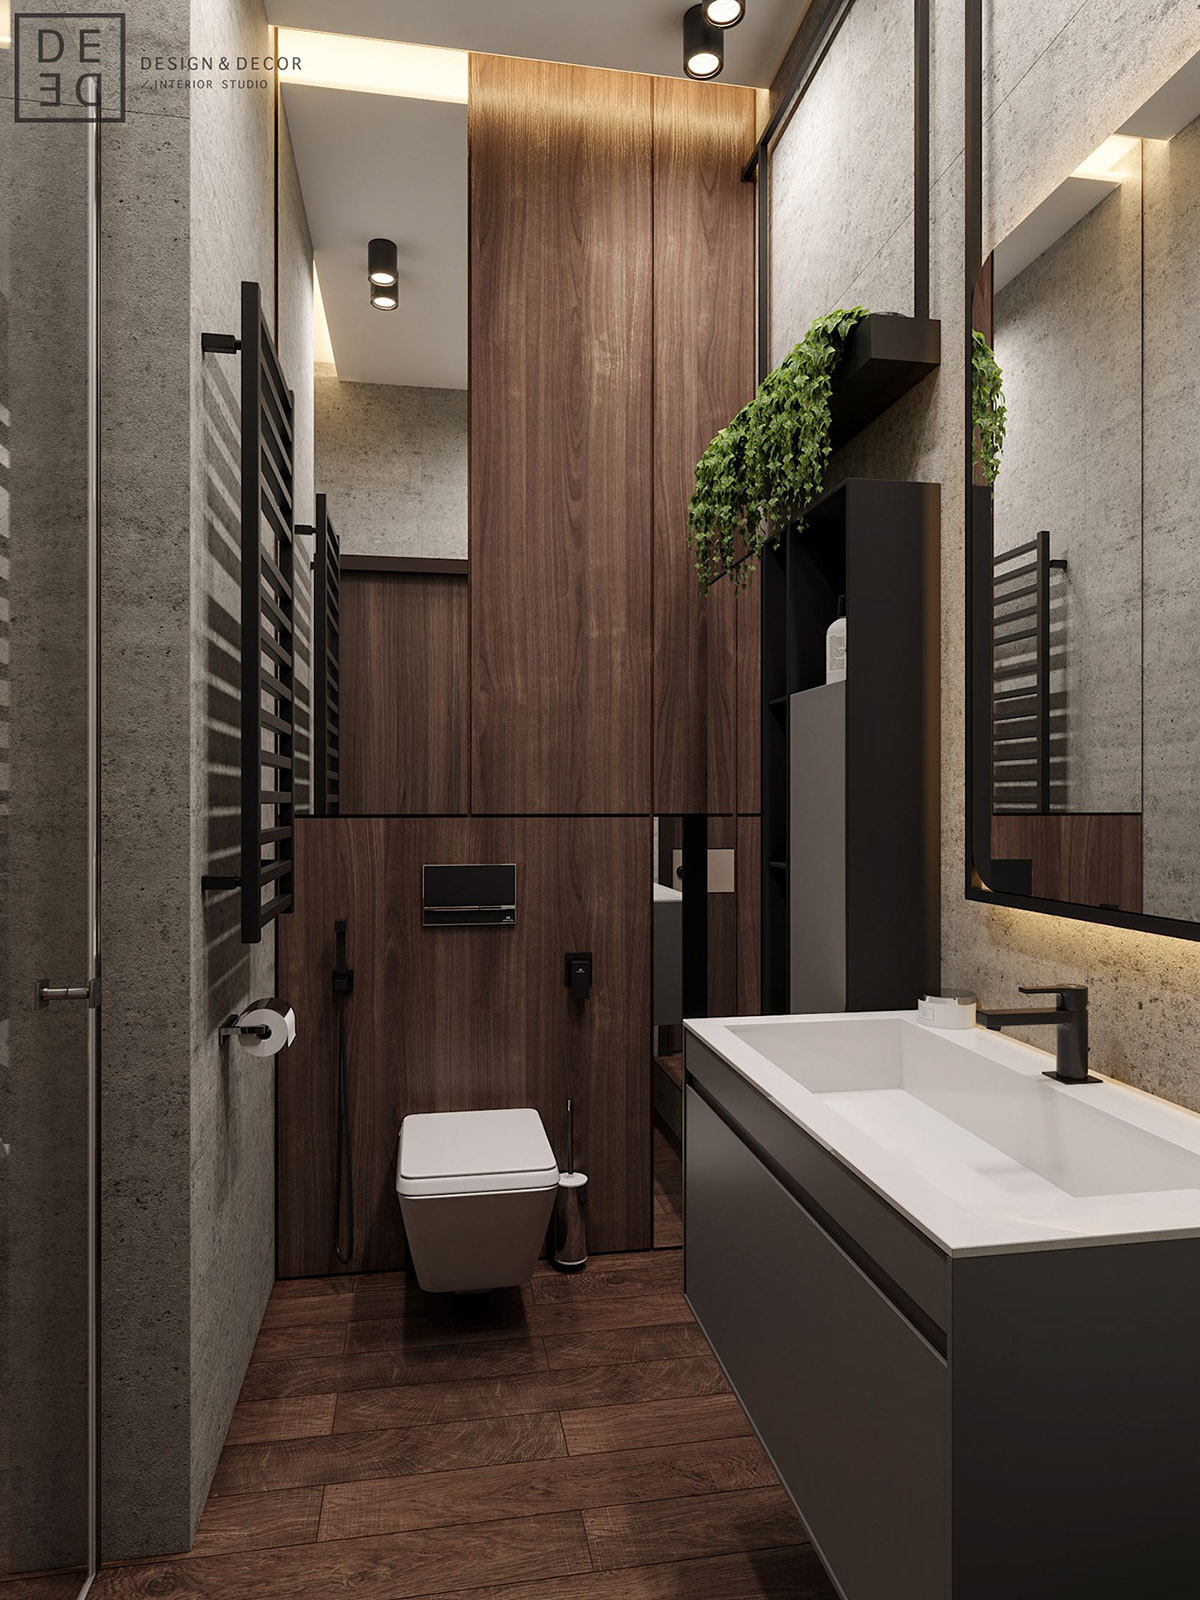 Luxurious Interior With Wood Slat Walls